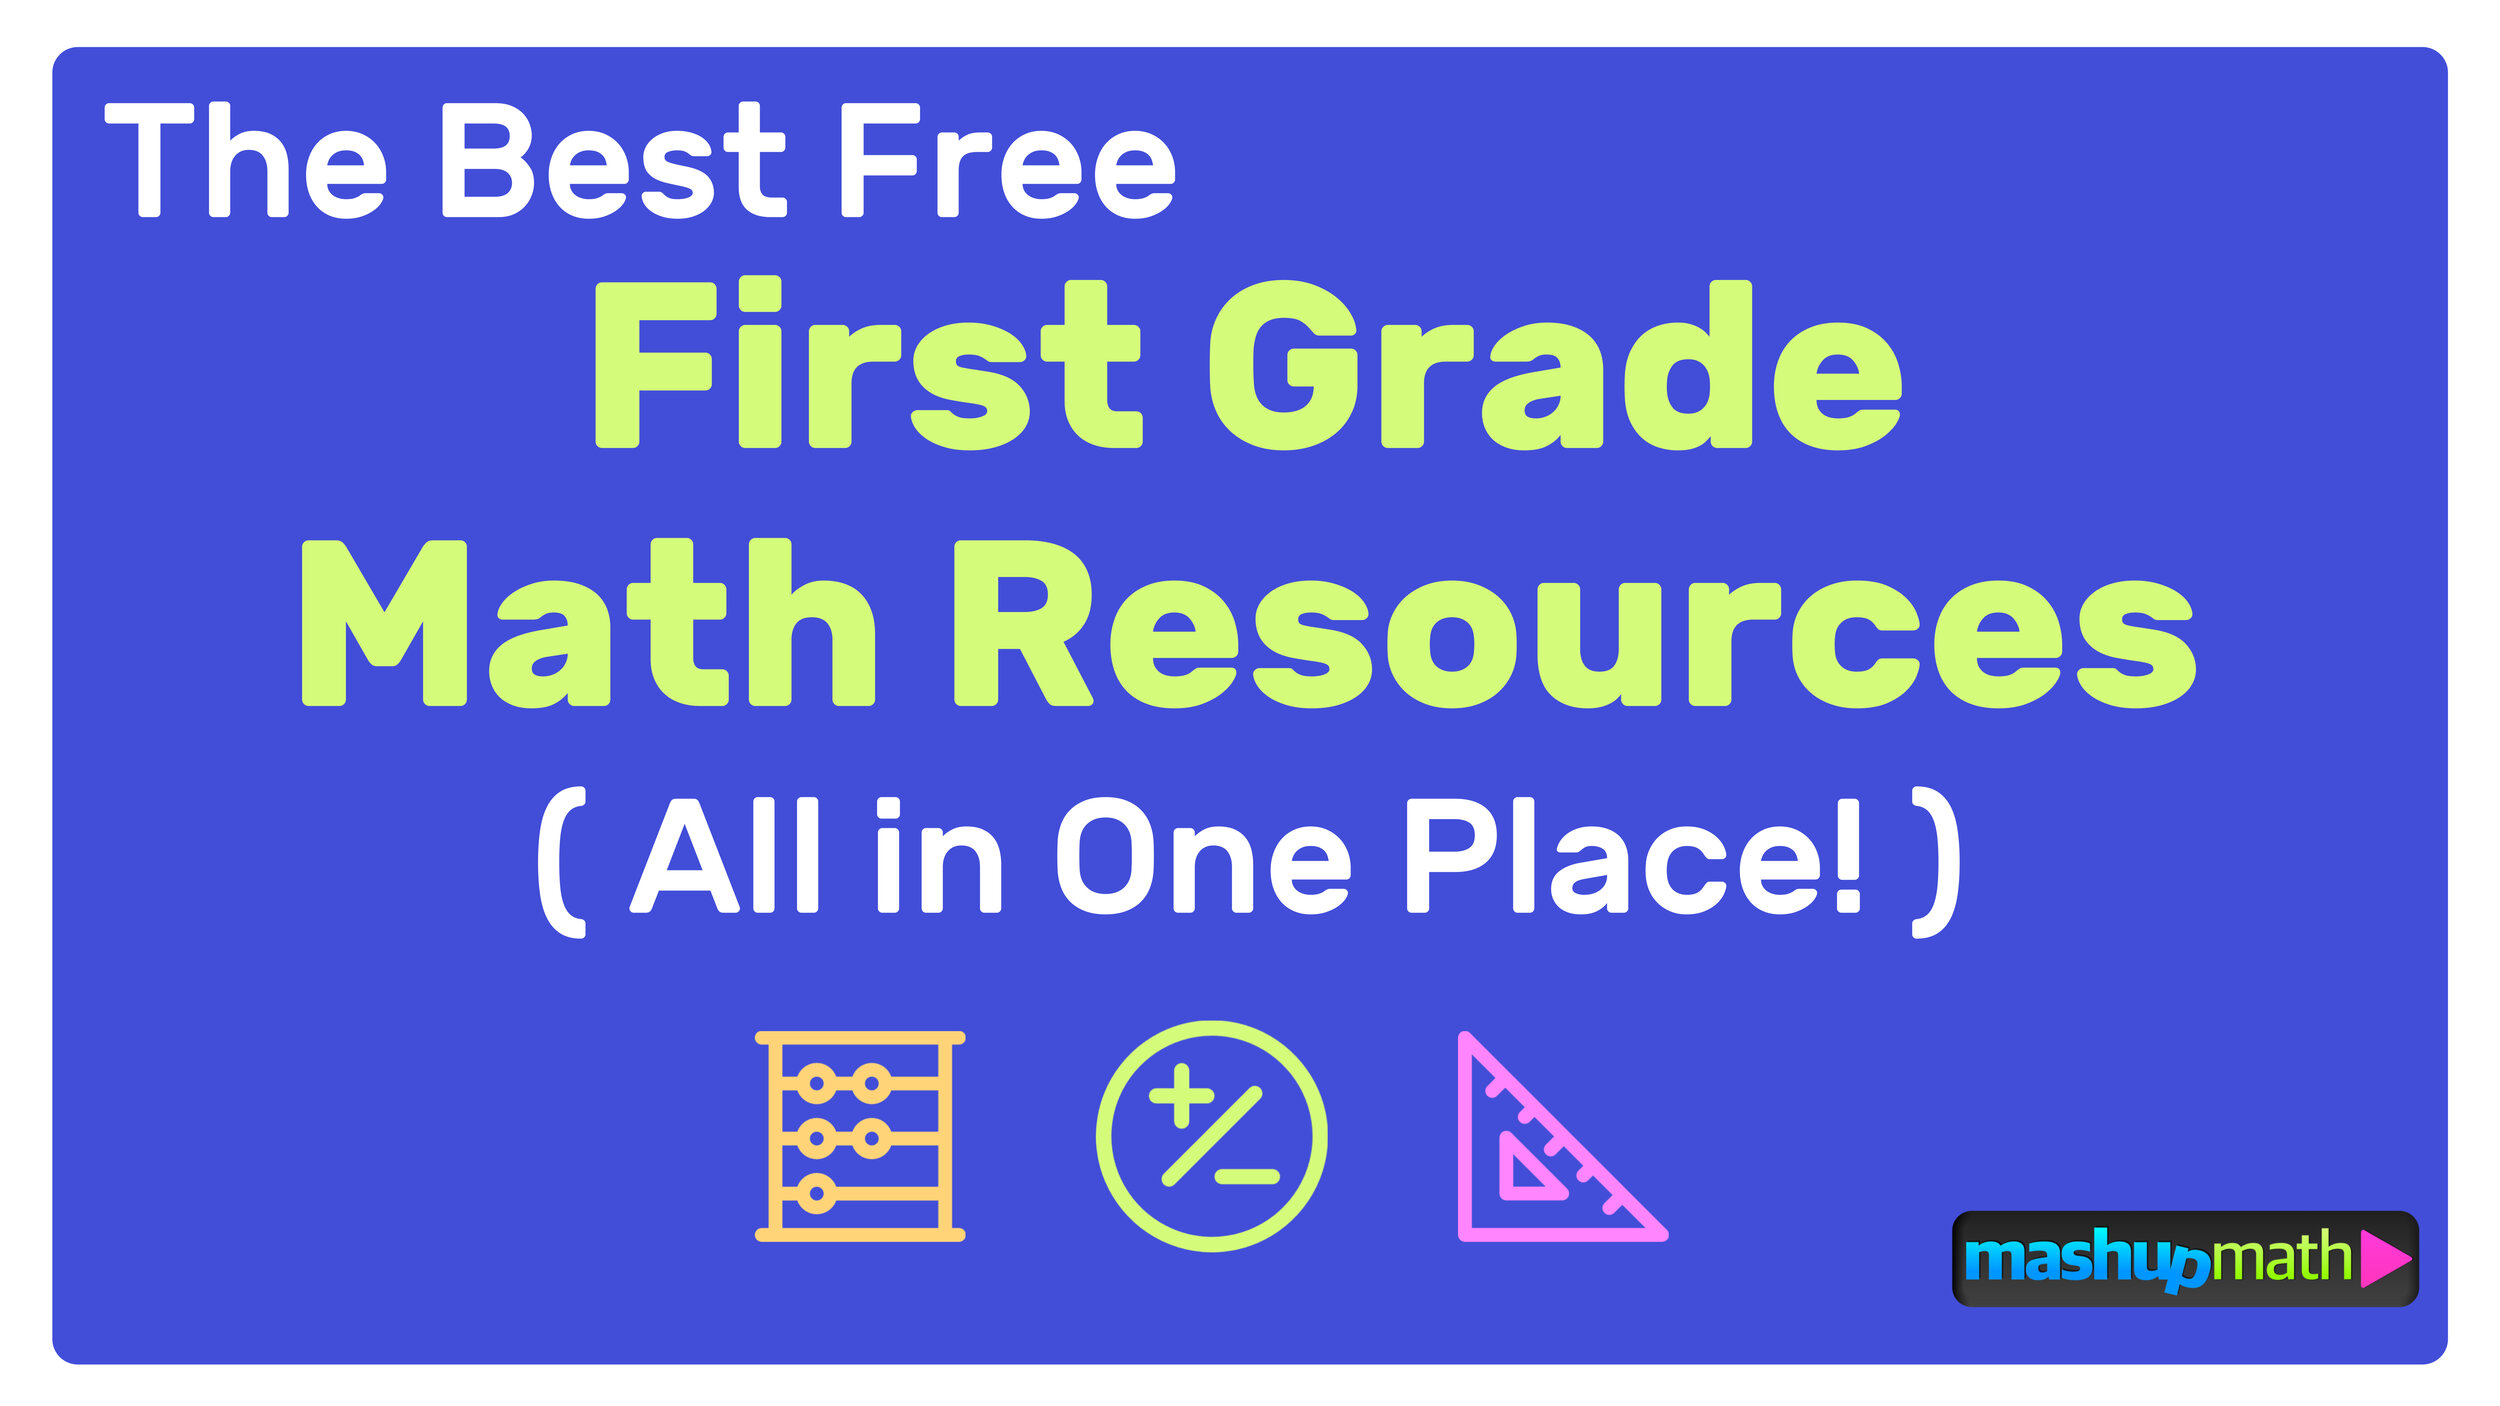 The Best Free First Grade Math Resources: Complete List! — Mashup Math